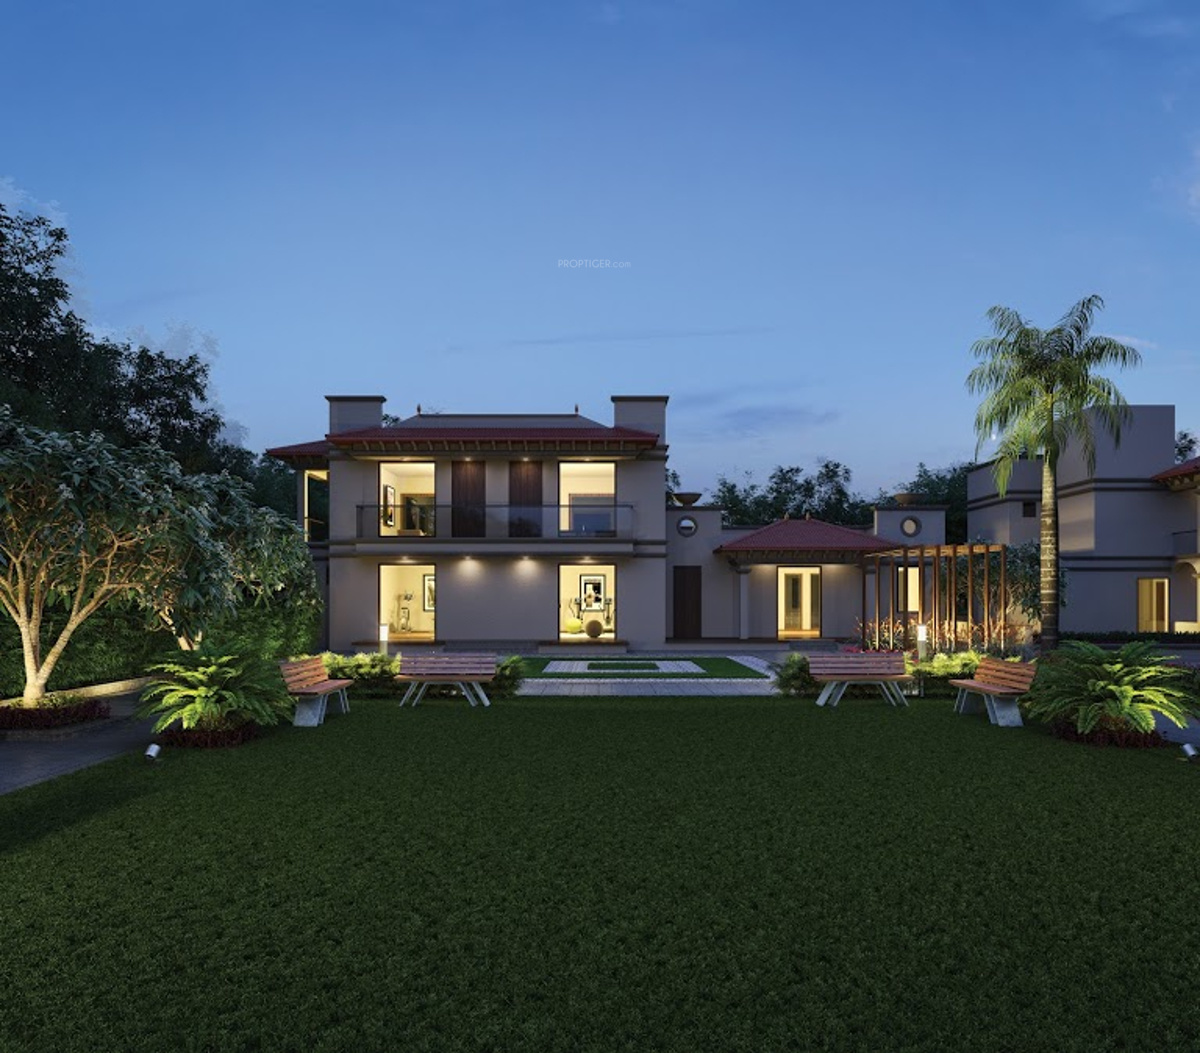 2430 sq ft 4 bhk 4t villa for sale in siddhivinayak realty for Casa bella